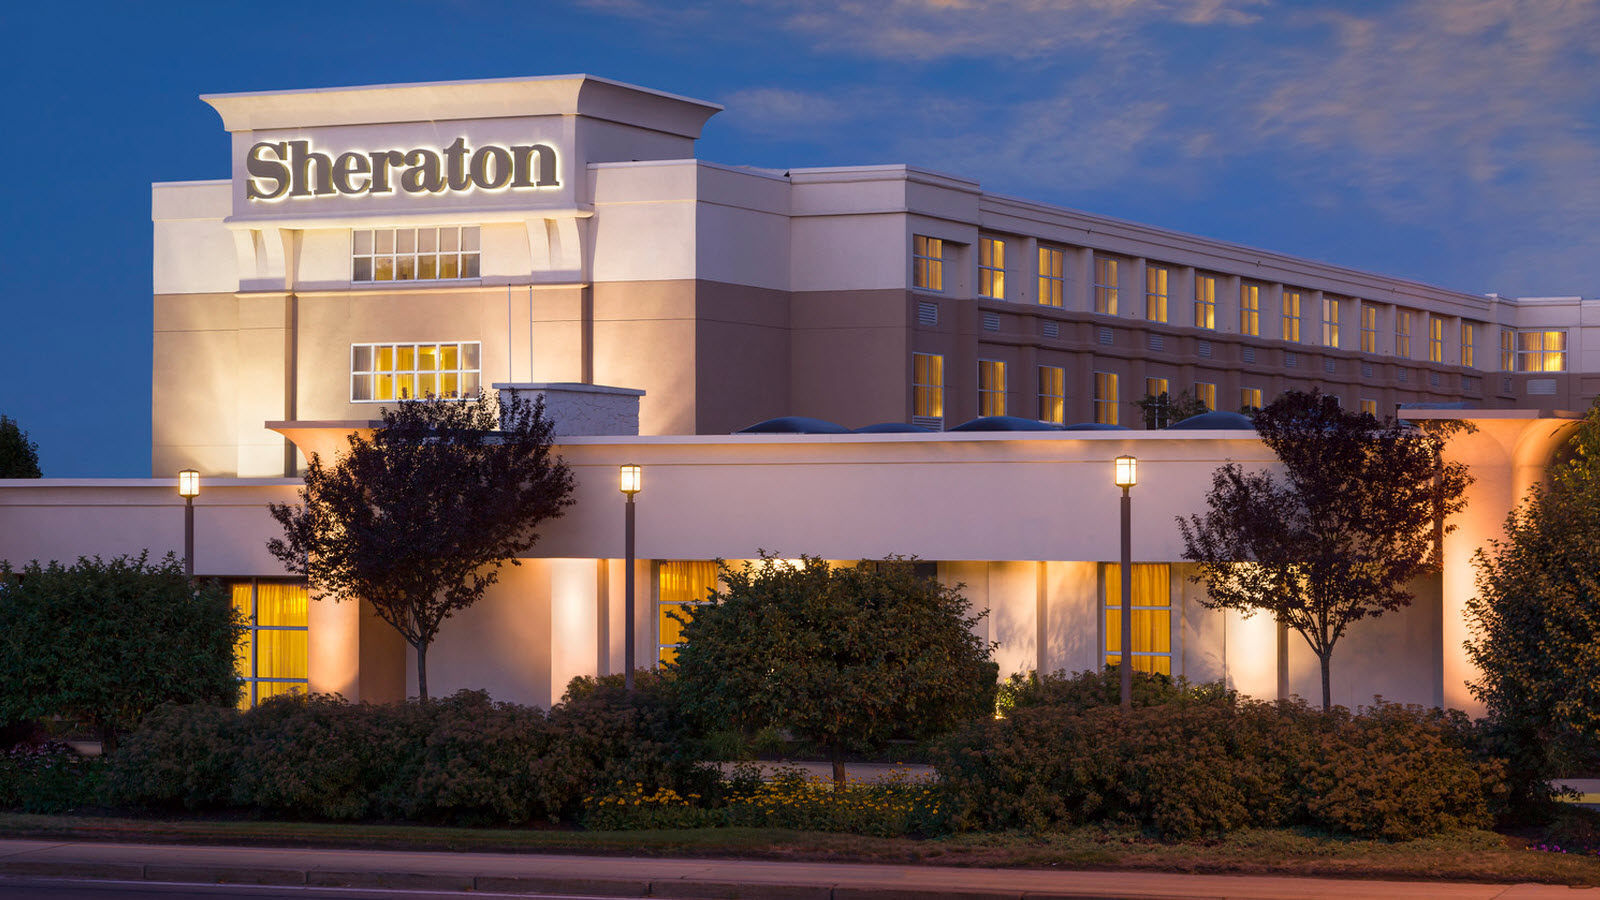 Sheraton Providence Airport Hotel - Colleges & Universities in the Area